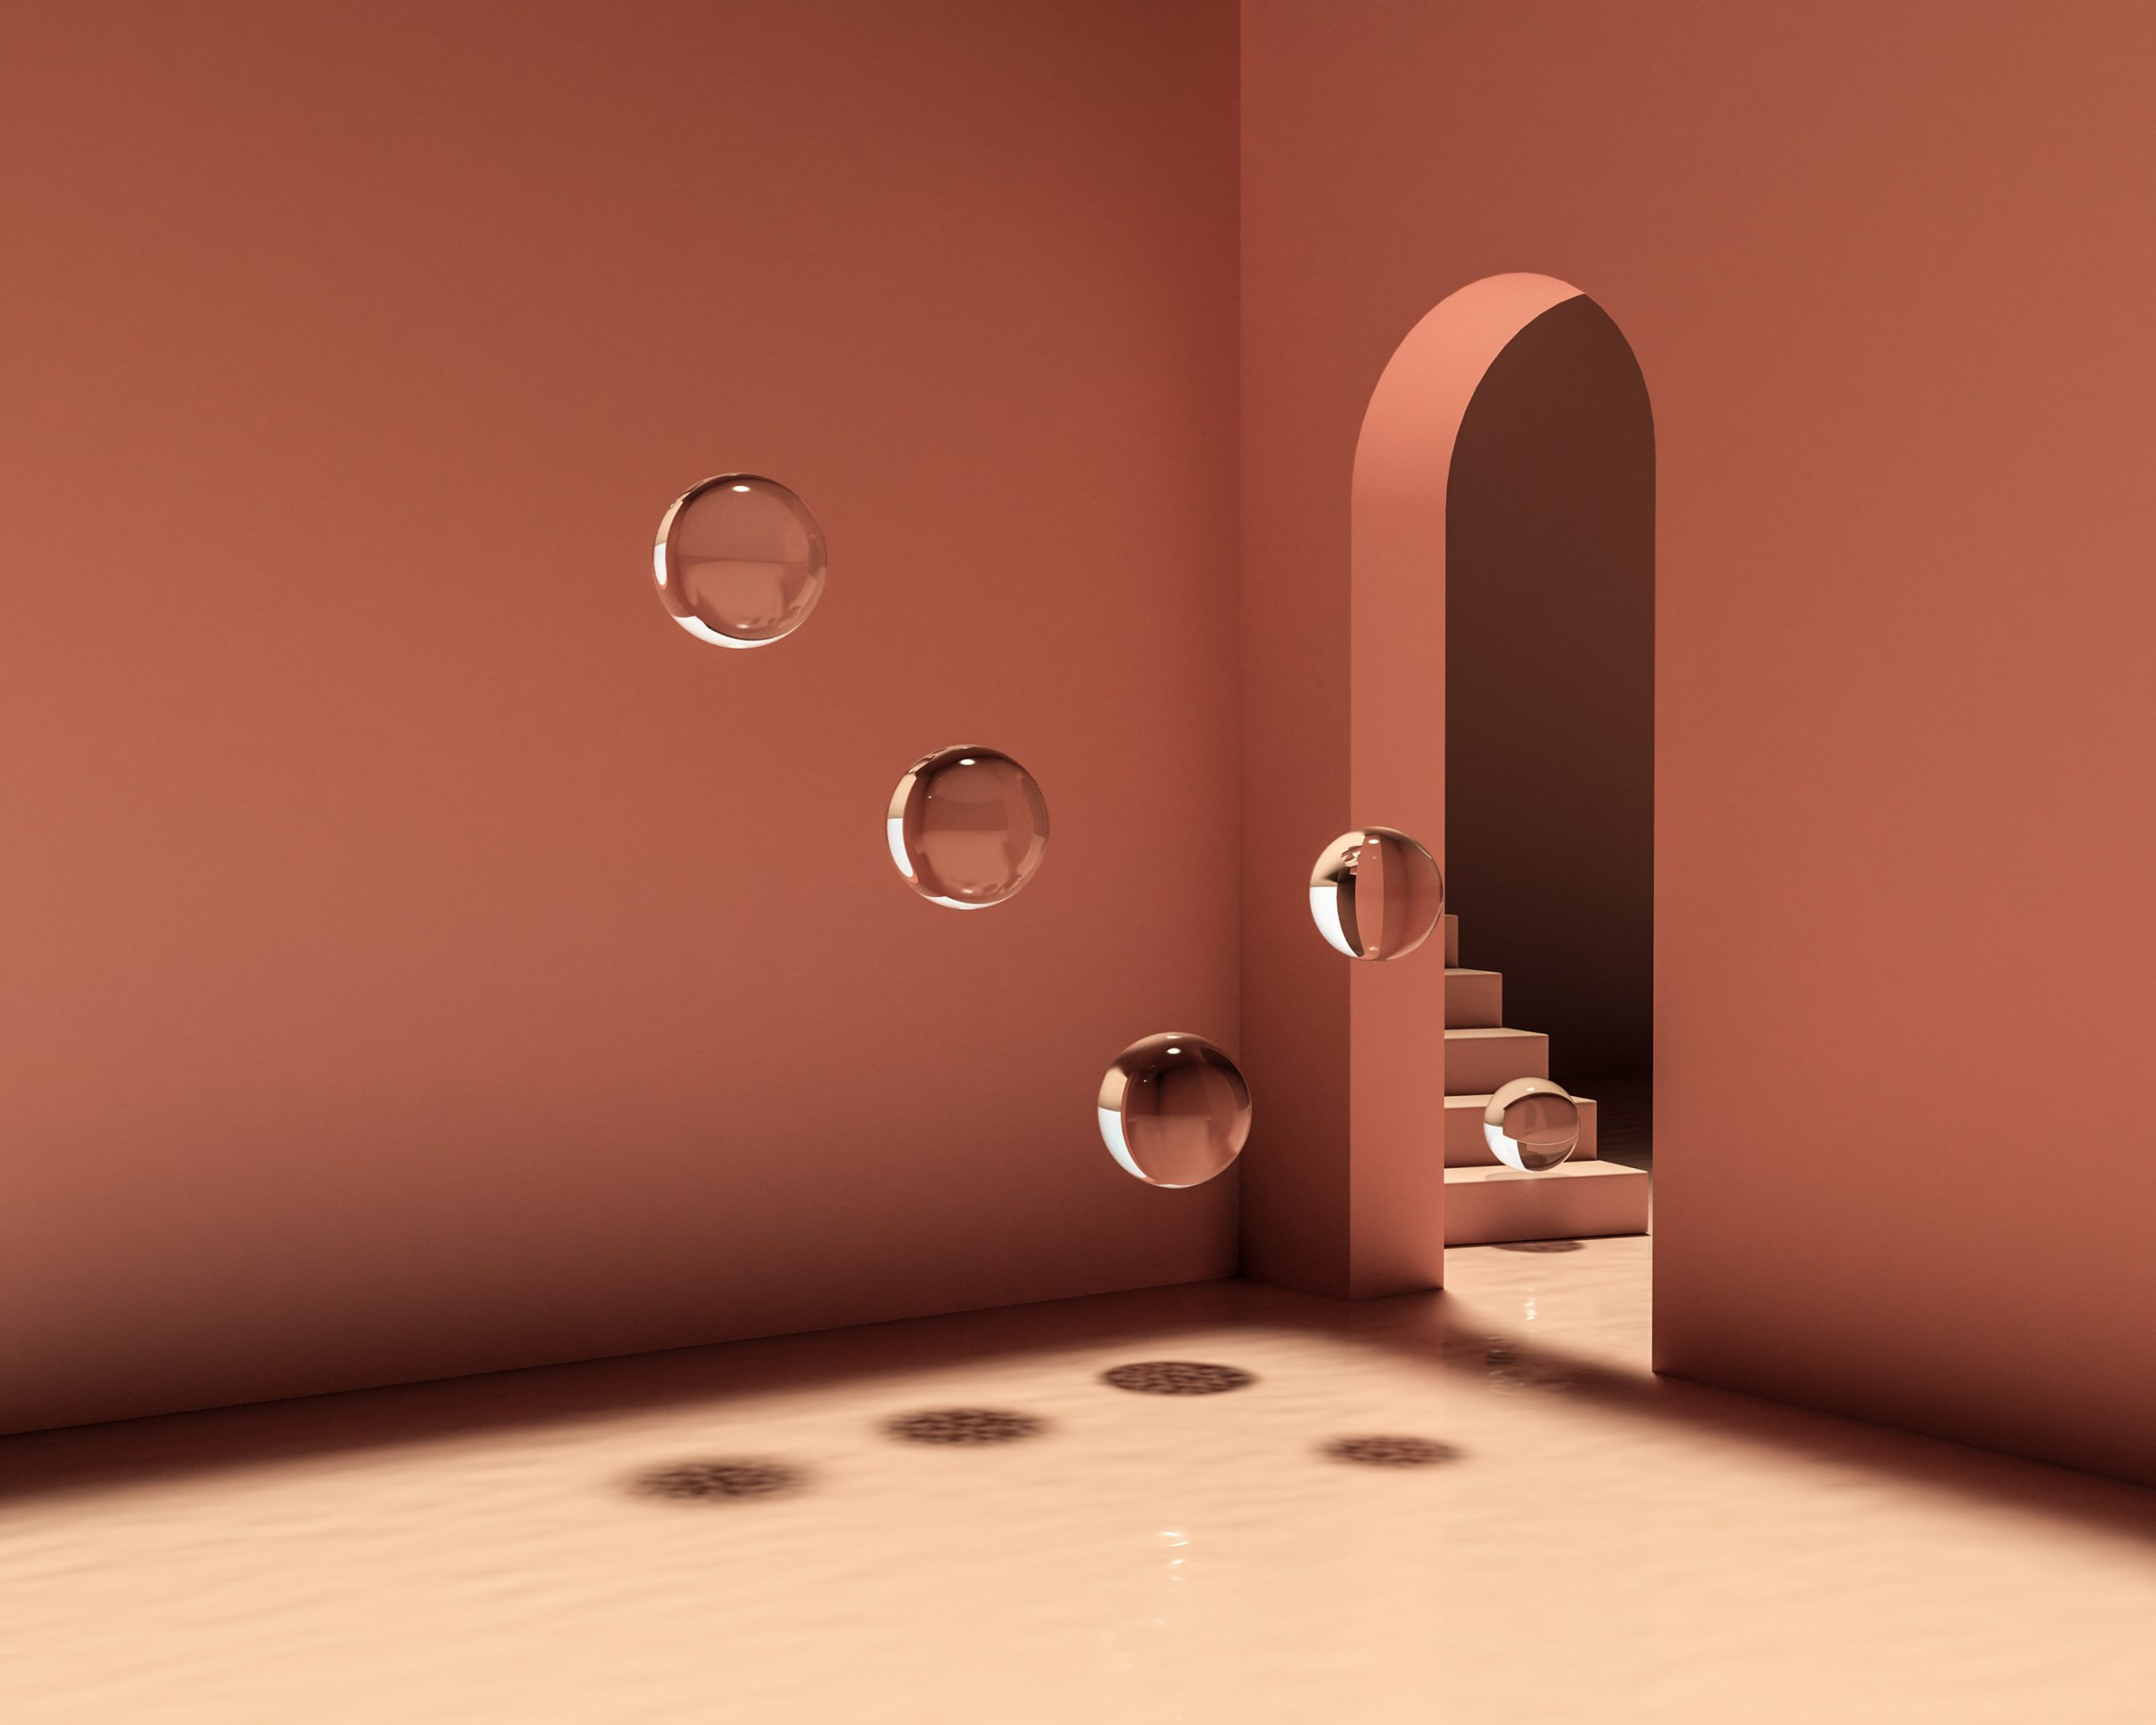 3D-visuals-trends-for-2021-2022-interior-and-exterior-spaces9